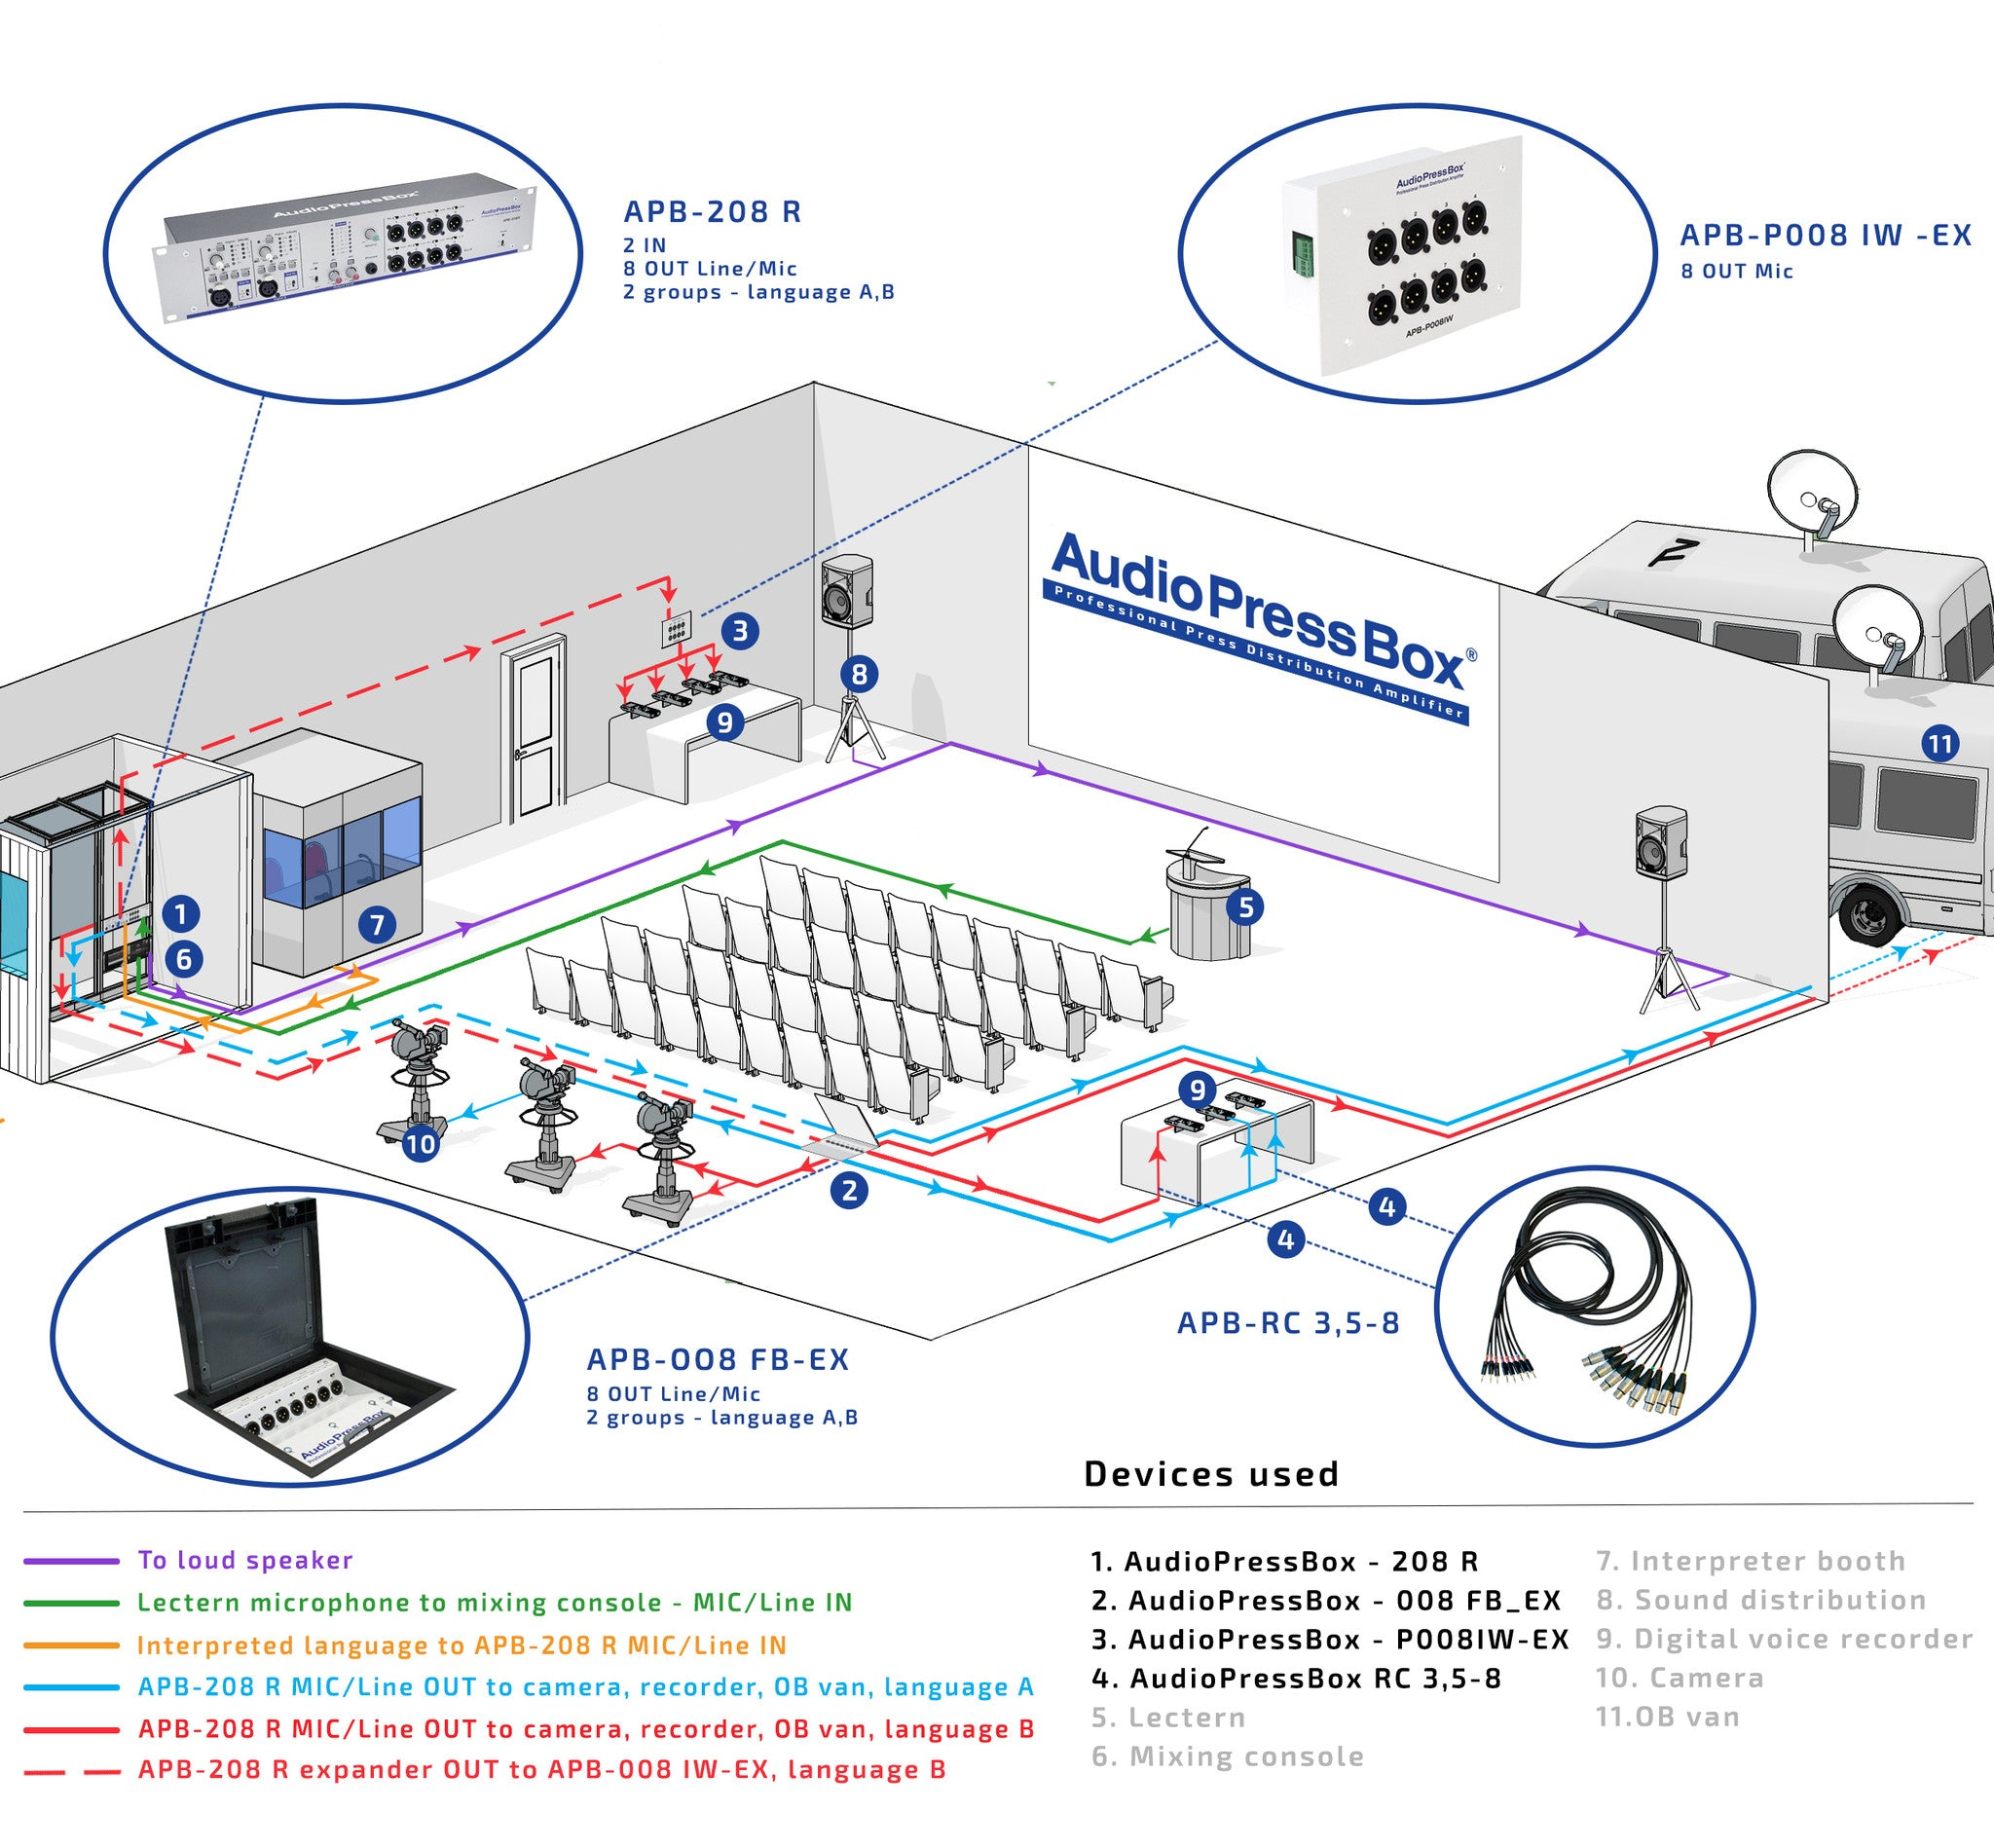 Applications Of Audiopressbox In A Press Conference 78 Volkswagen Vanagon Wiring Diagram Apb 208 R And P008 Iw